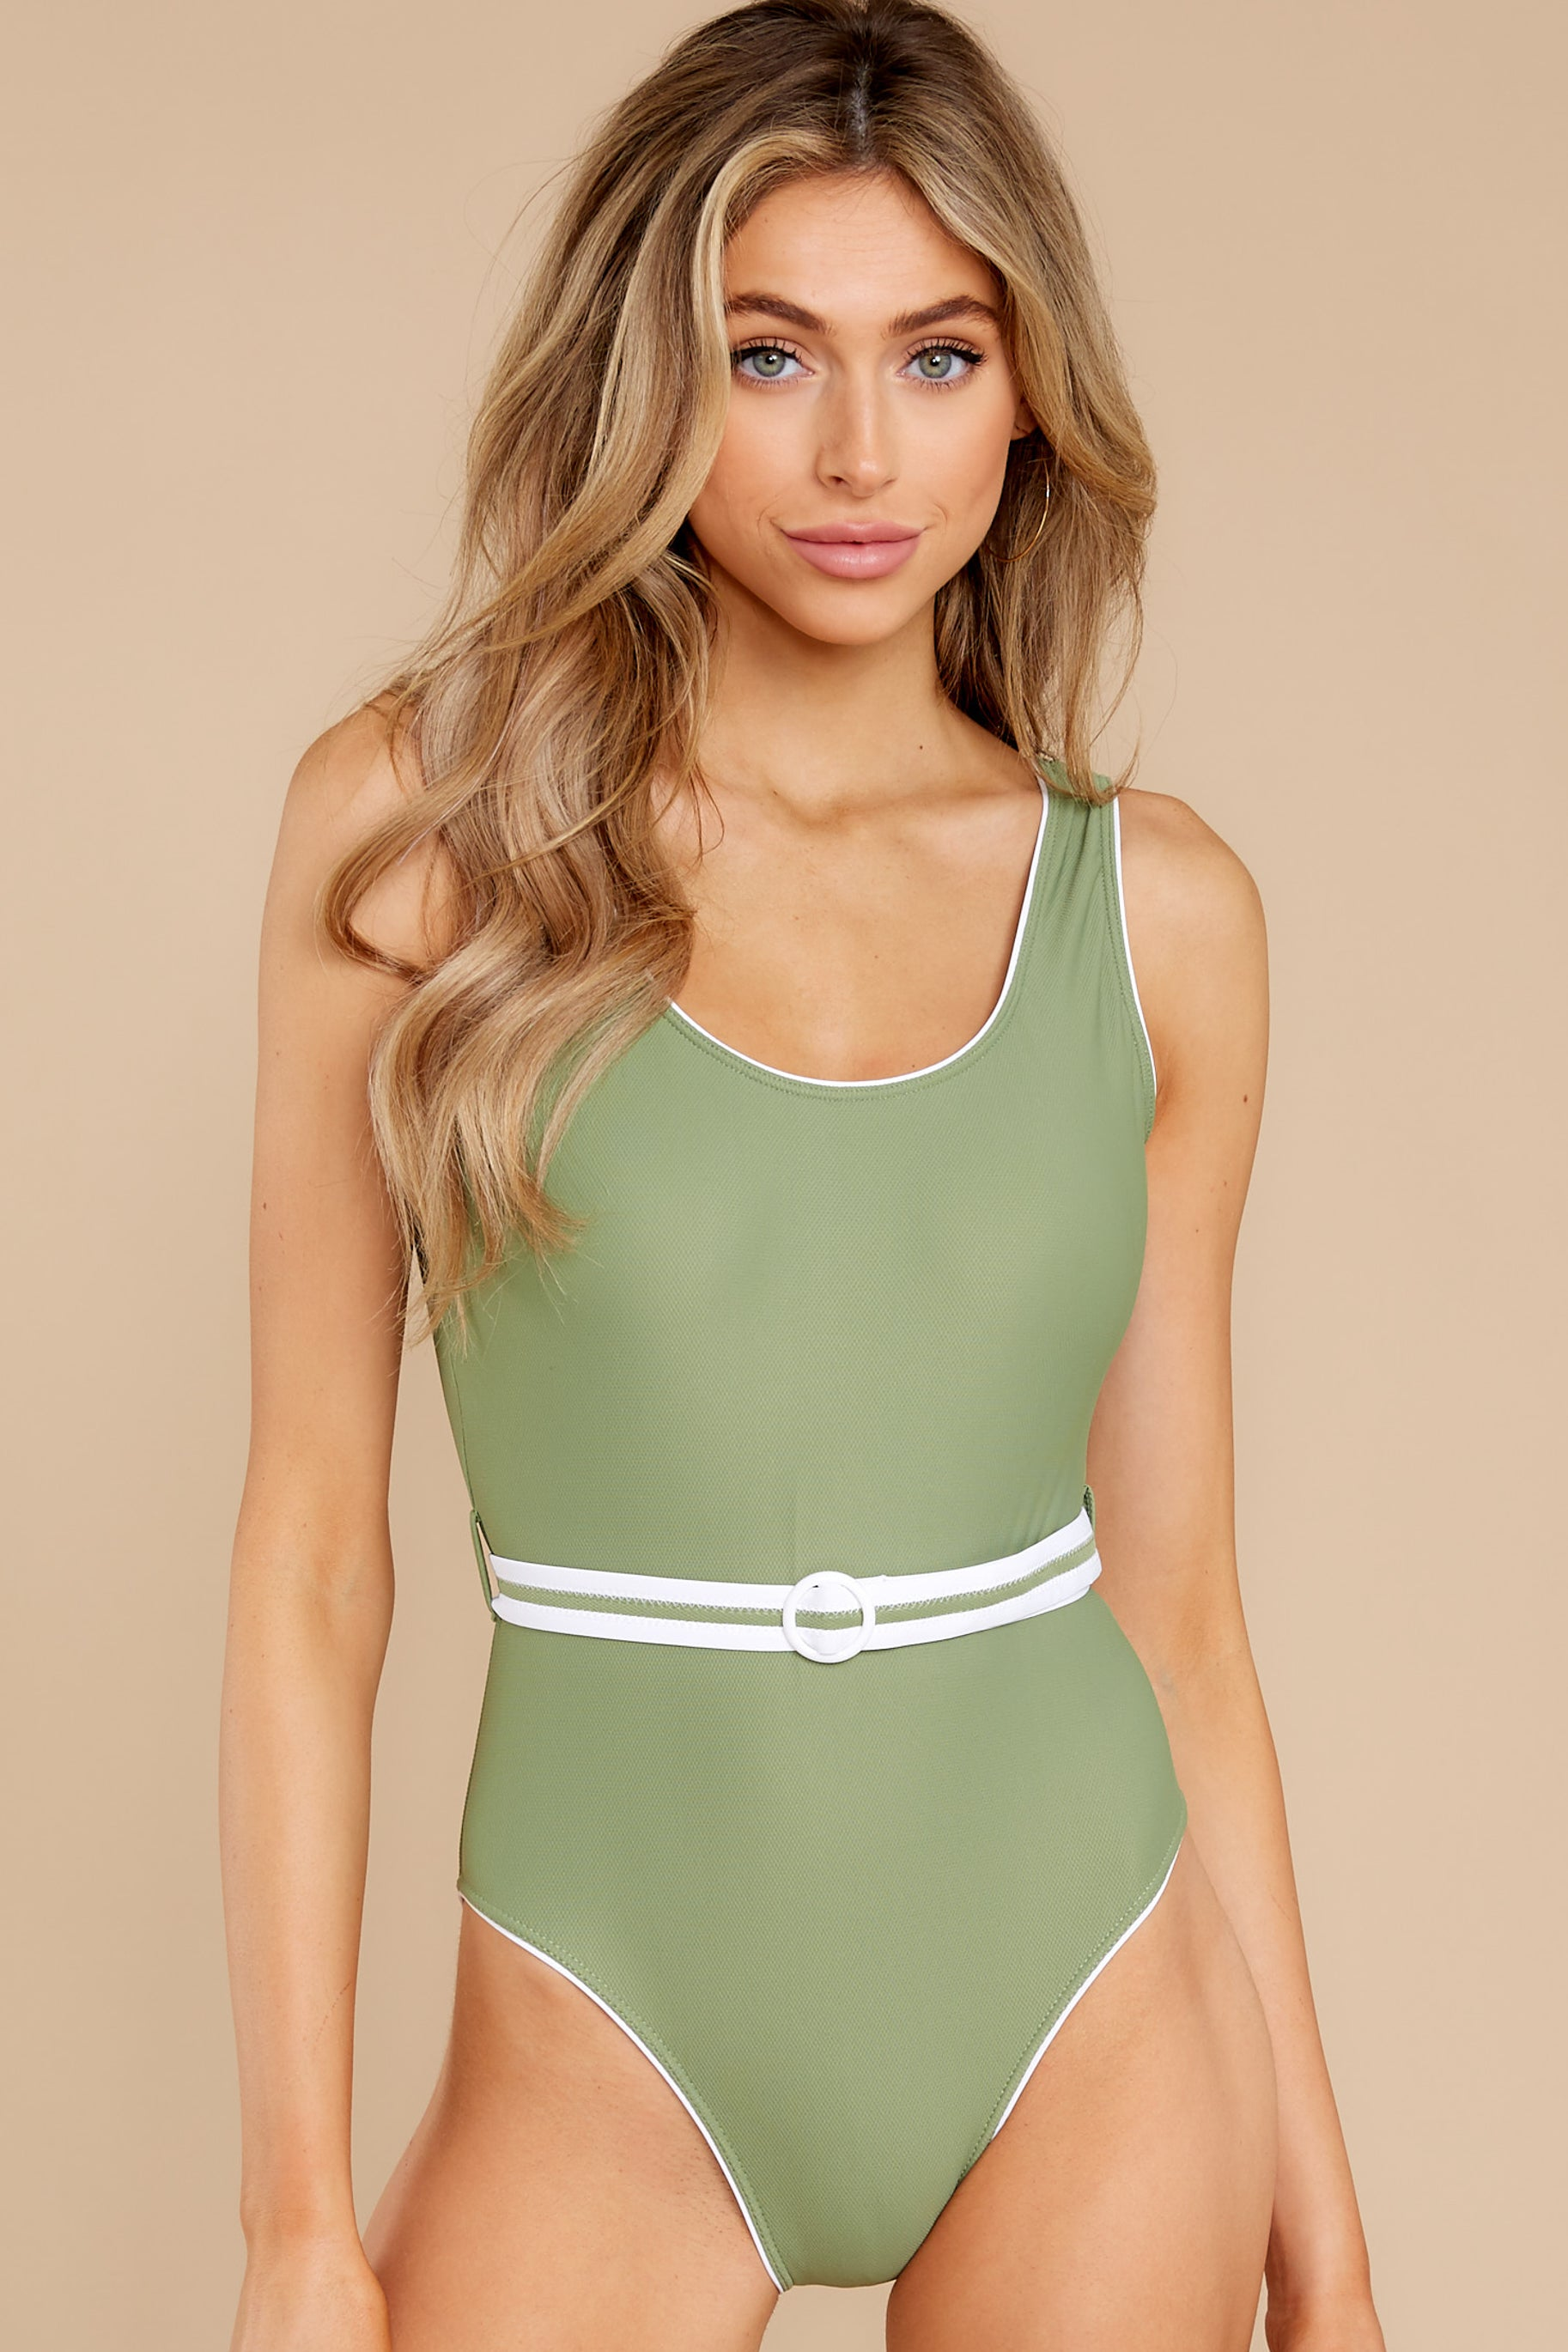 1960s Style Clothing & 60s Fashion In The Surf Green One Piece Swimsuit Swimwear $46.00 AT vintagedancer.com